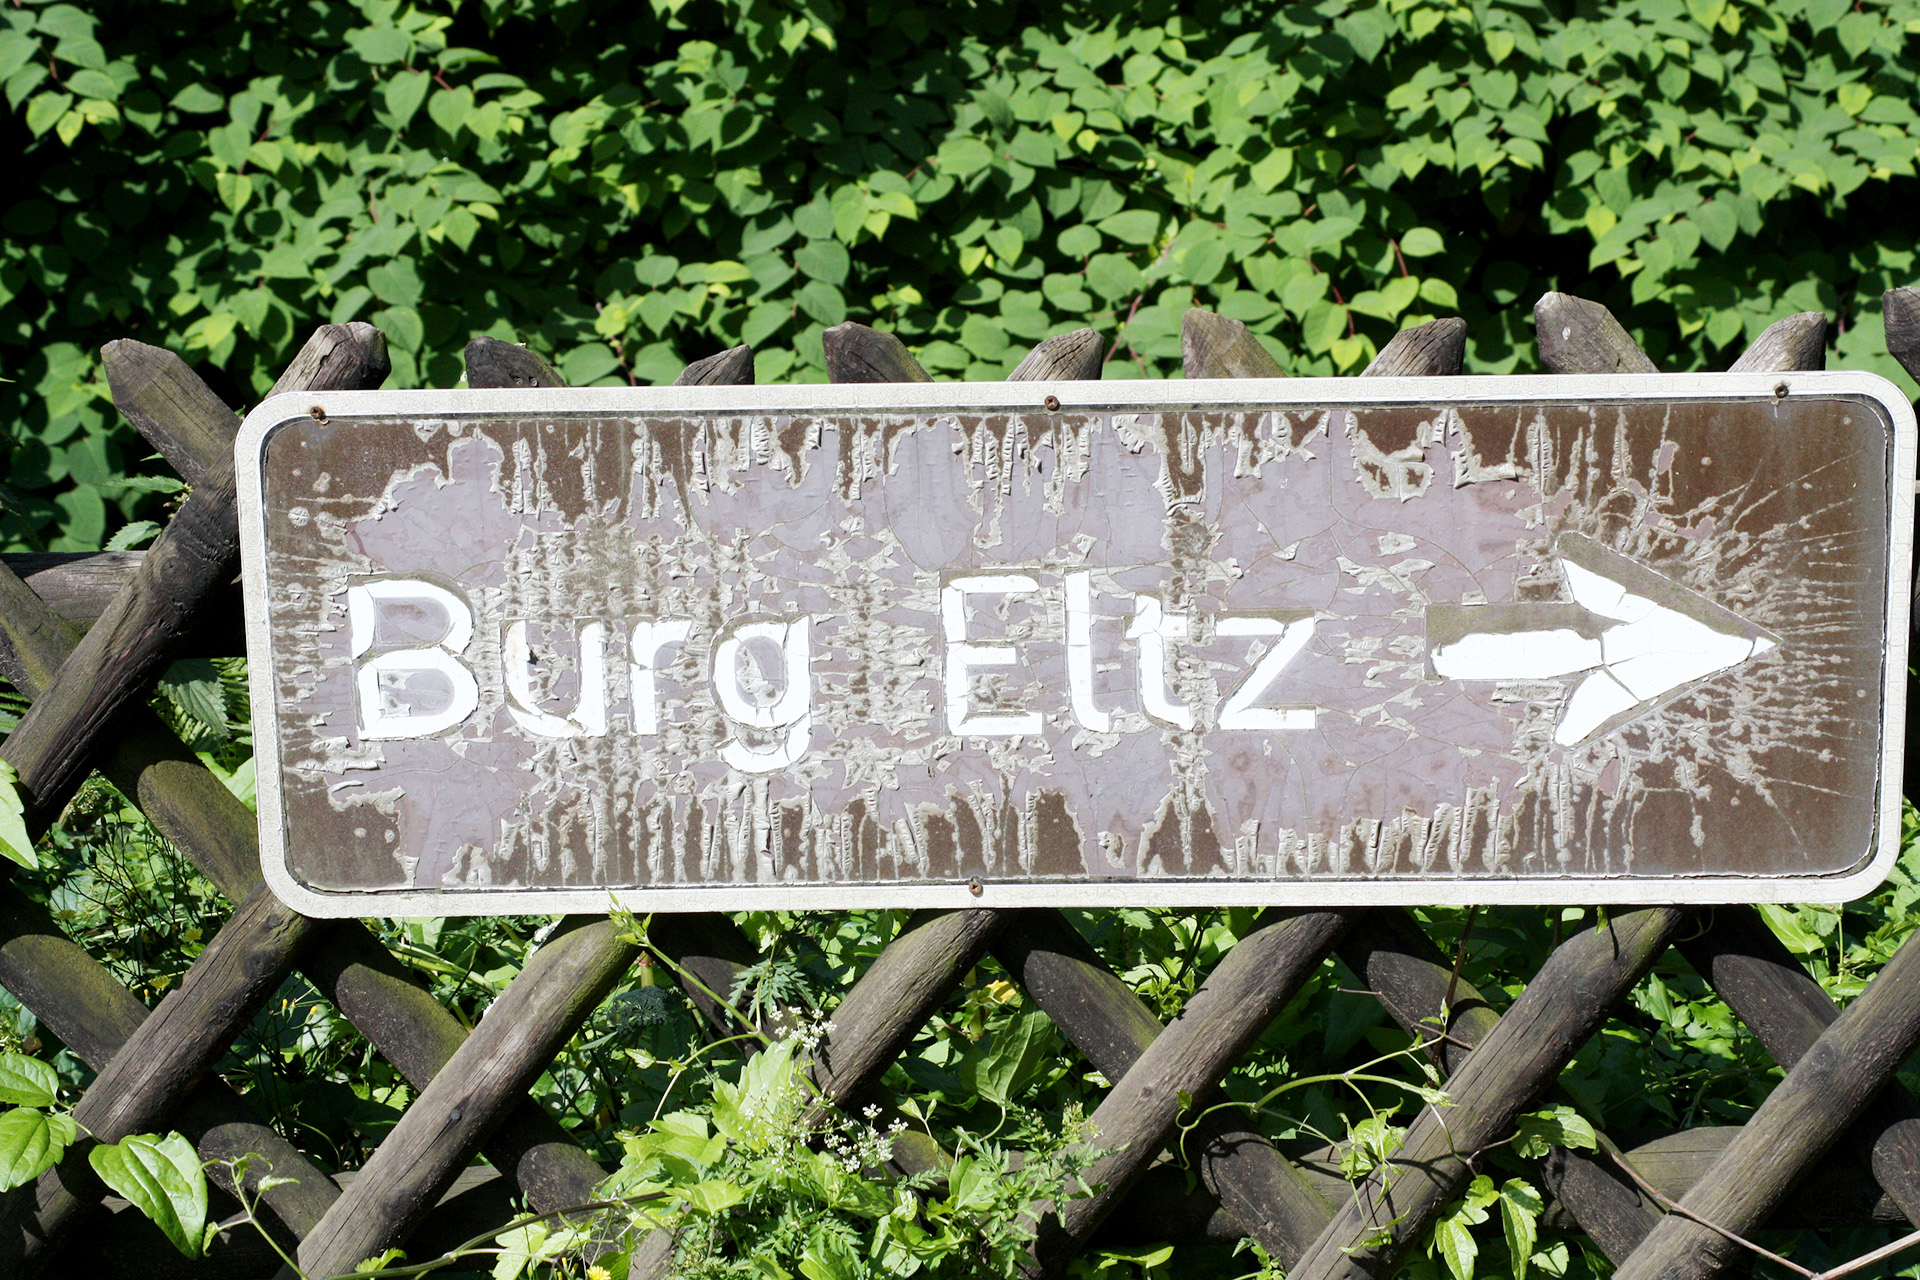 The Burg Eltz trail head.